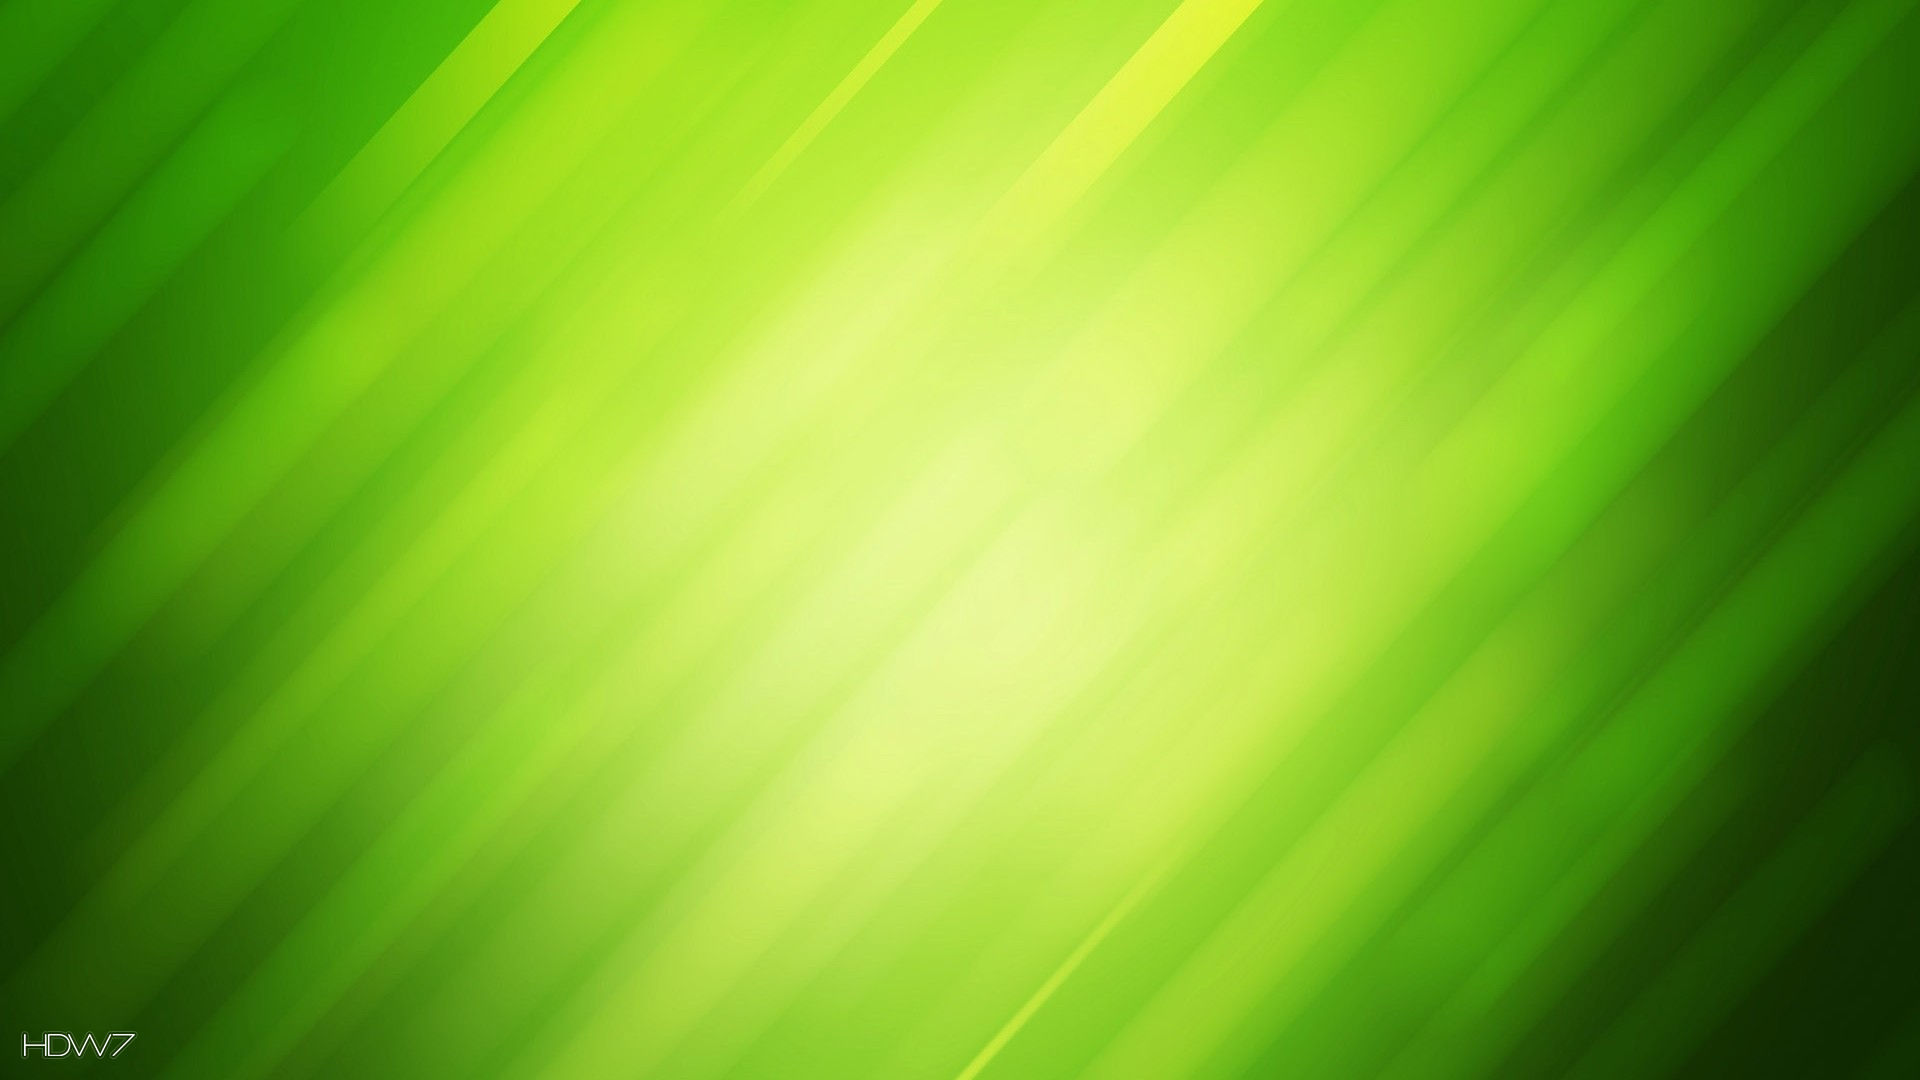 Green abstract hd wallpaper 1080p hd wallpaper gallery 342 green abstract hd wallpaper 1080p voltagebd Image collections